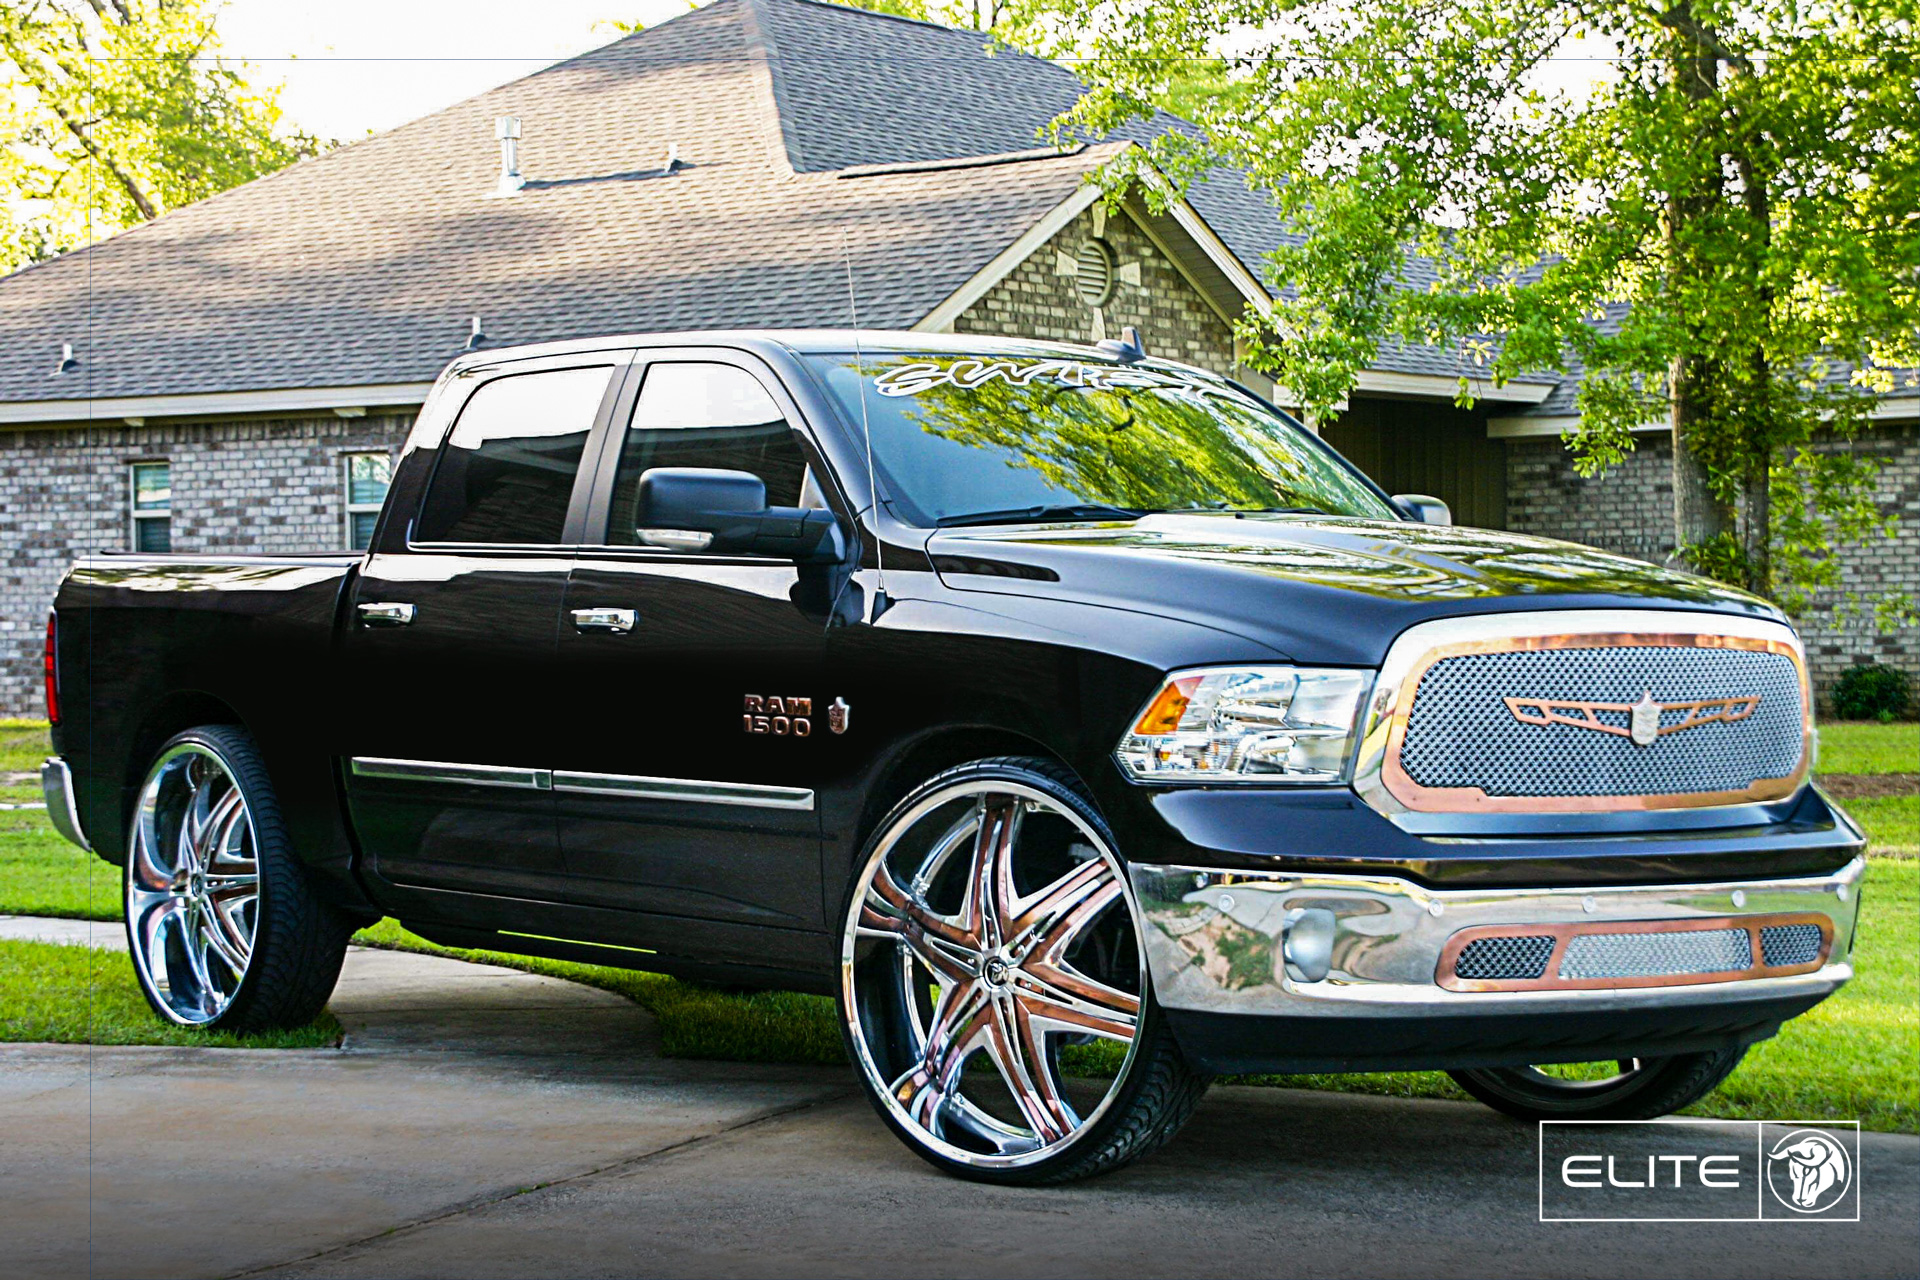 Diablo Wheels - Elite on a RAM 1500 Rose Gold